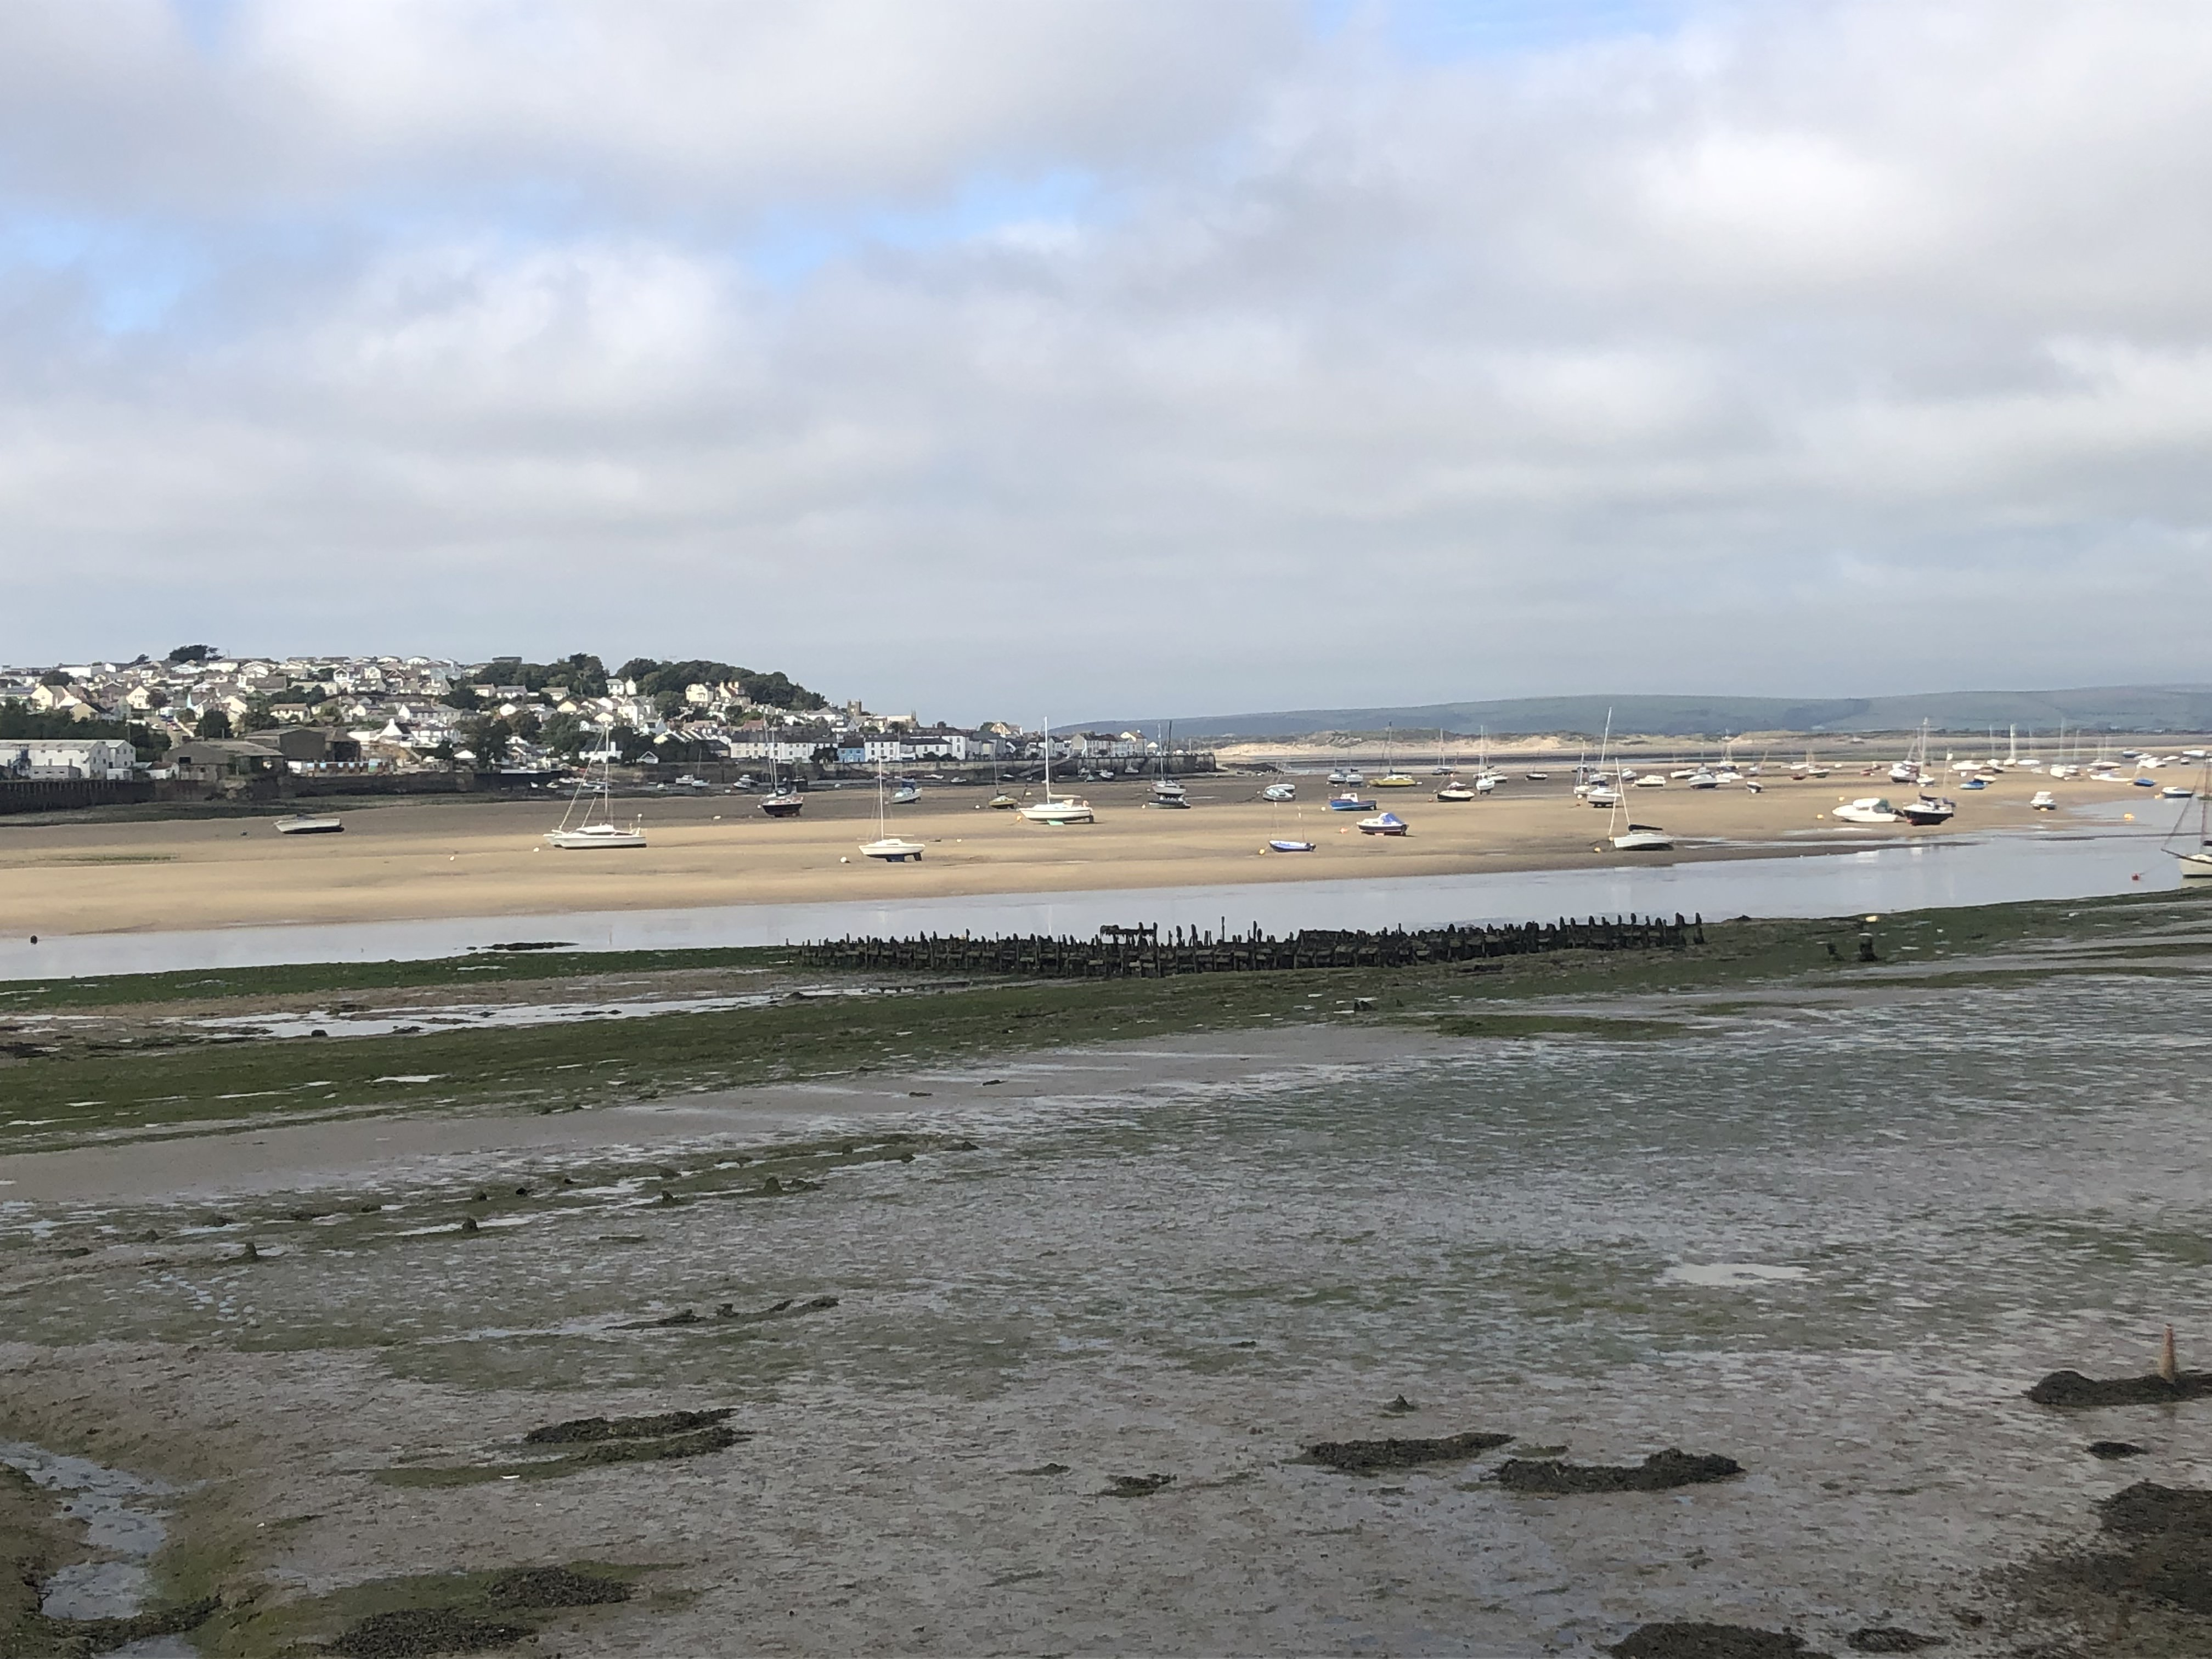 The view across the River Taw to Appledore whilst walking the South West Coast Path from Barnstaple to Appledore